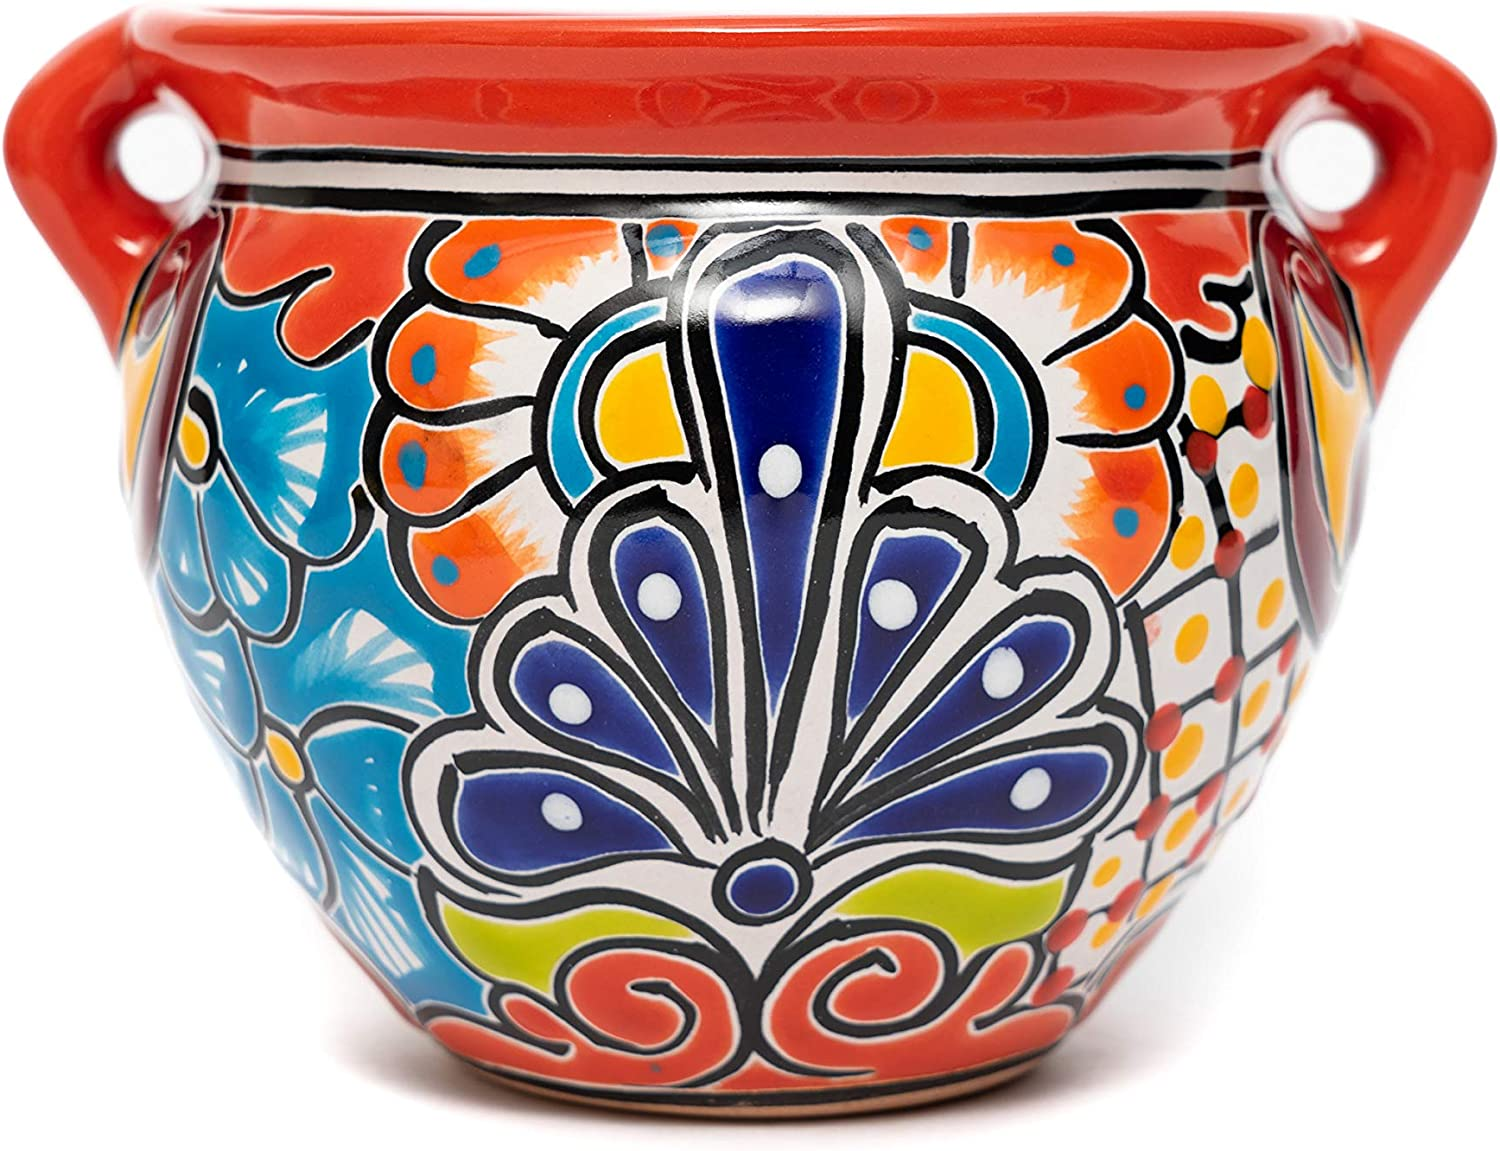 Enchanted Talavera Mexican Ceramic Flower Pot Plant Pot Succulent Pot Garden Planter Home Décor (Red)